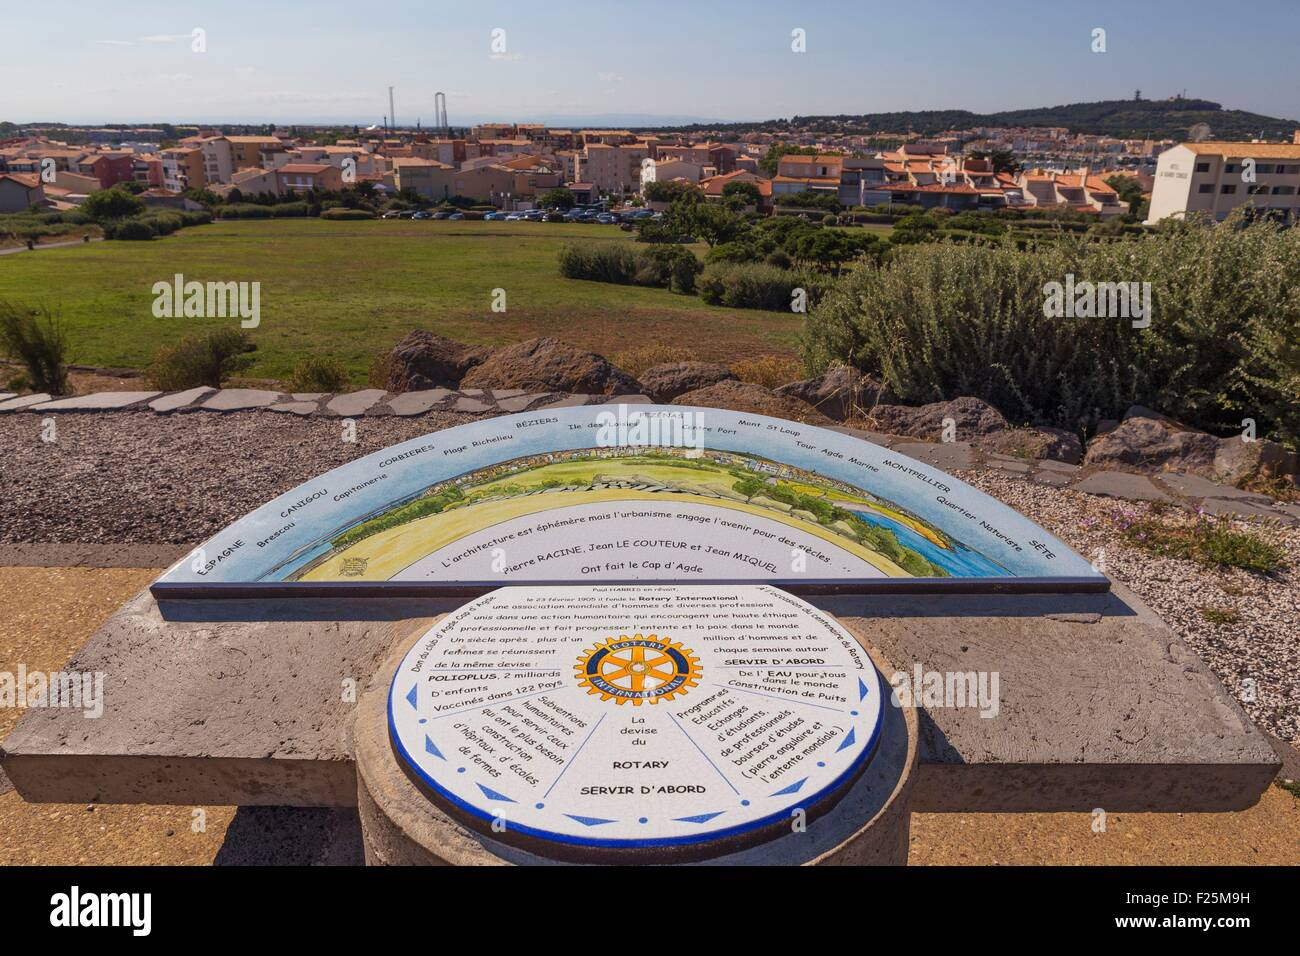 France, Herault, Le Cap d'Agde, viewpoint - Stock Image